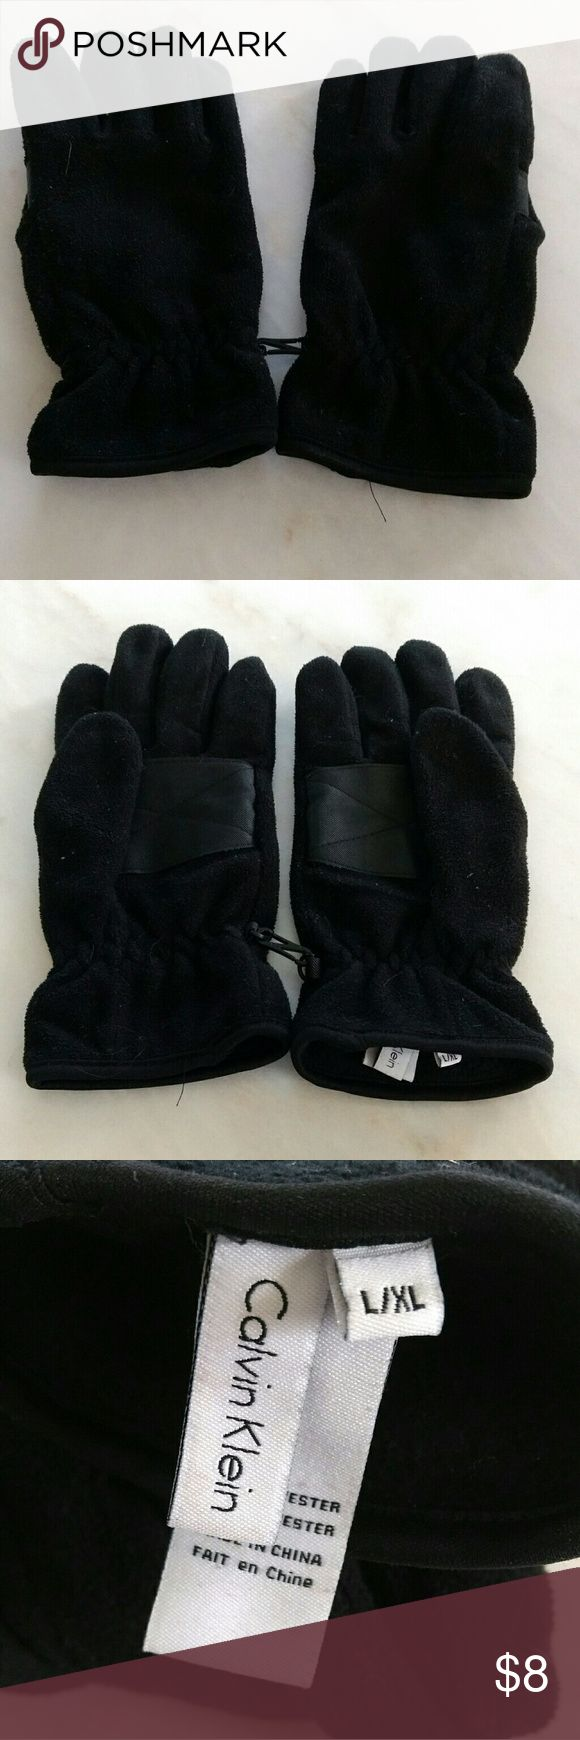 Fingerless leather gloves mens accessories - Calvin Klein Men S Gloves L Xl Calvin Klein Gloves 100 Polyester